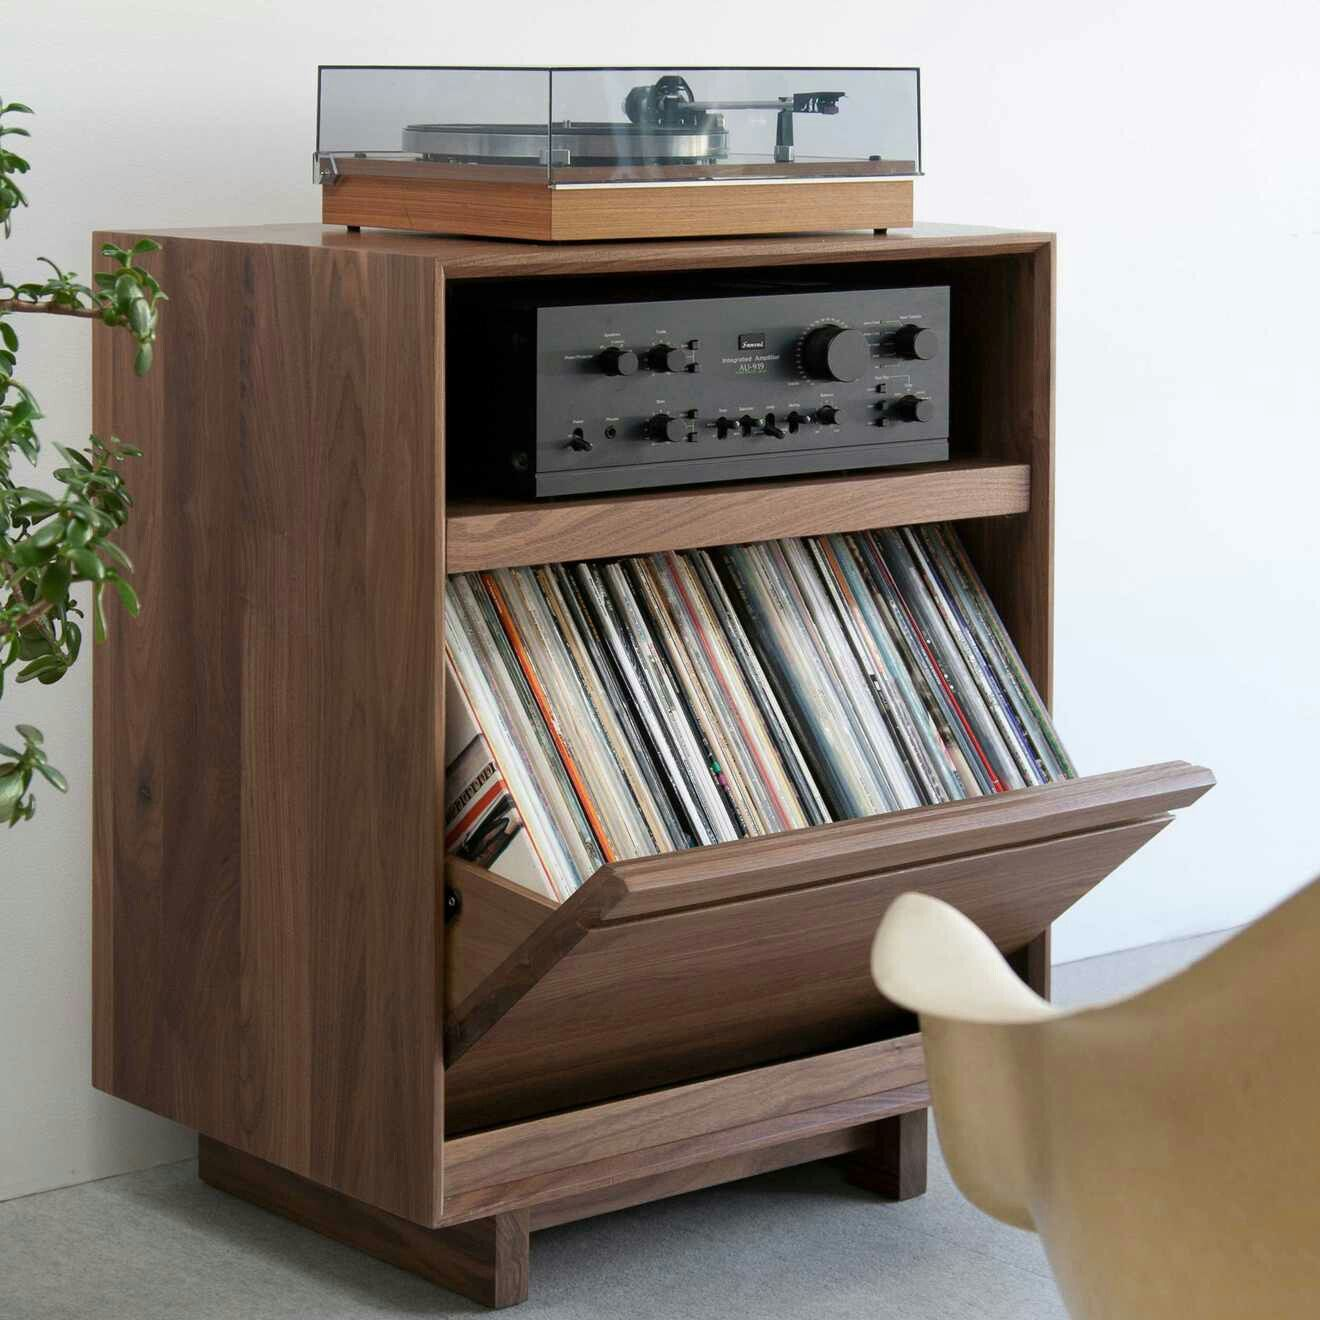 Turntable amp vinyl stand aero 25 media stand by symbol audio turntable amp vinyl stand aero 25 media stand by symbol audio biocorpaavc